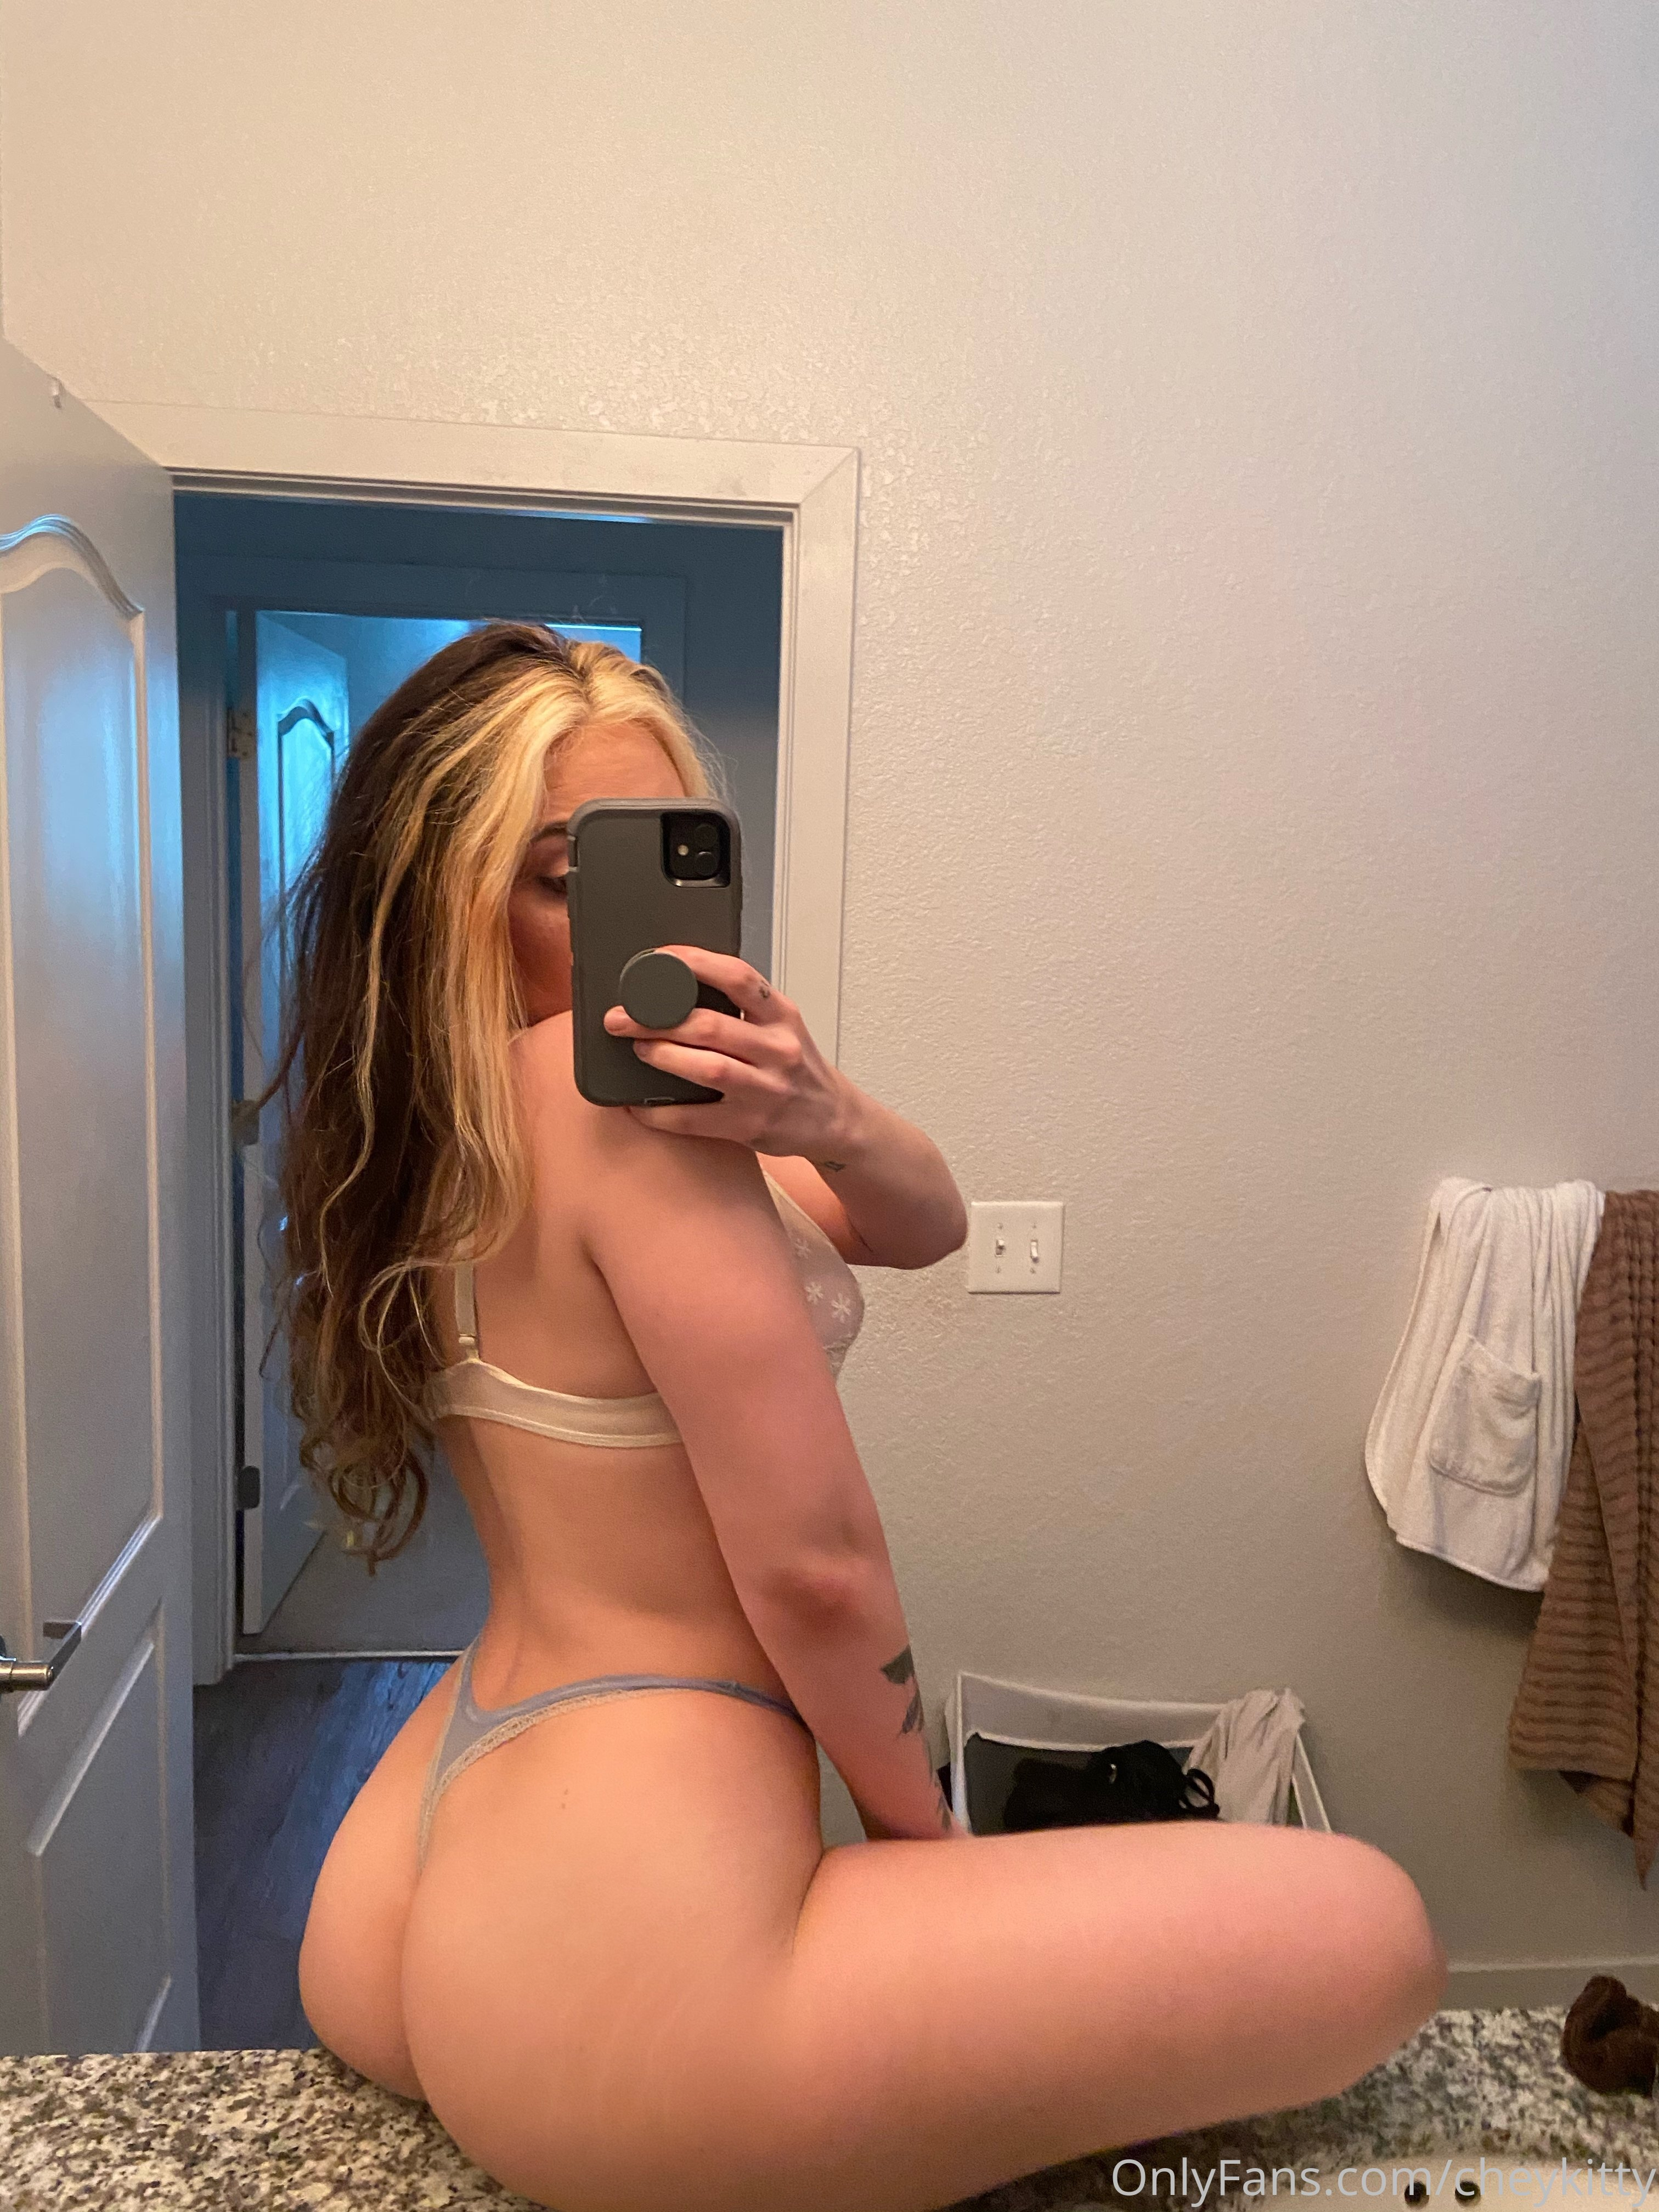 Cheykitty Onlyfans Leaked 0117